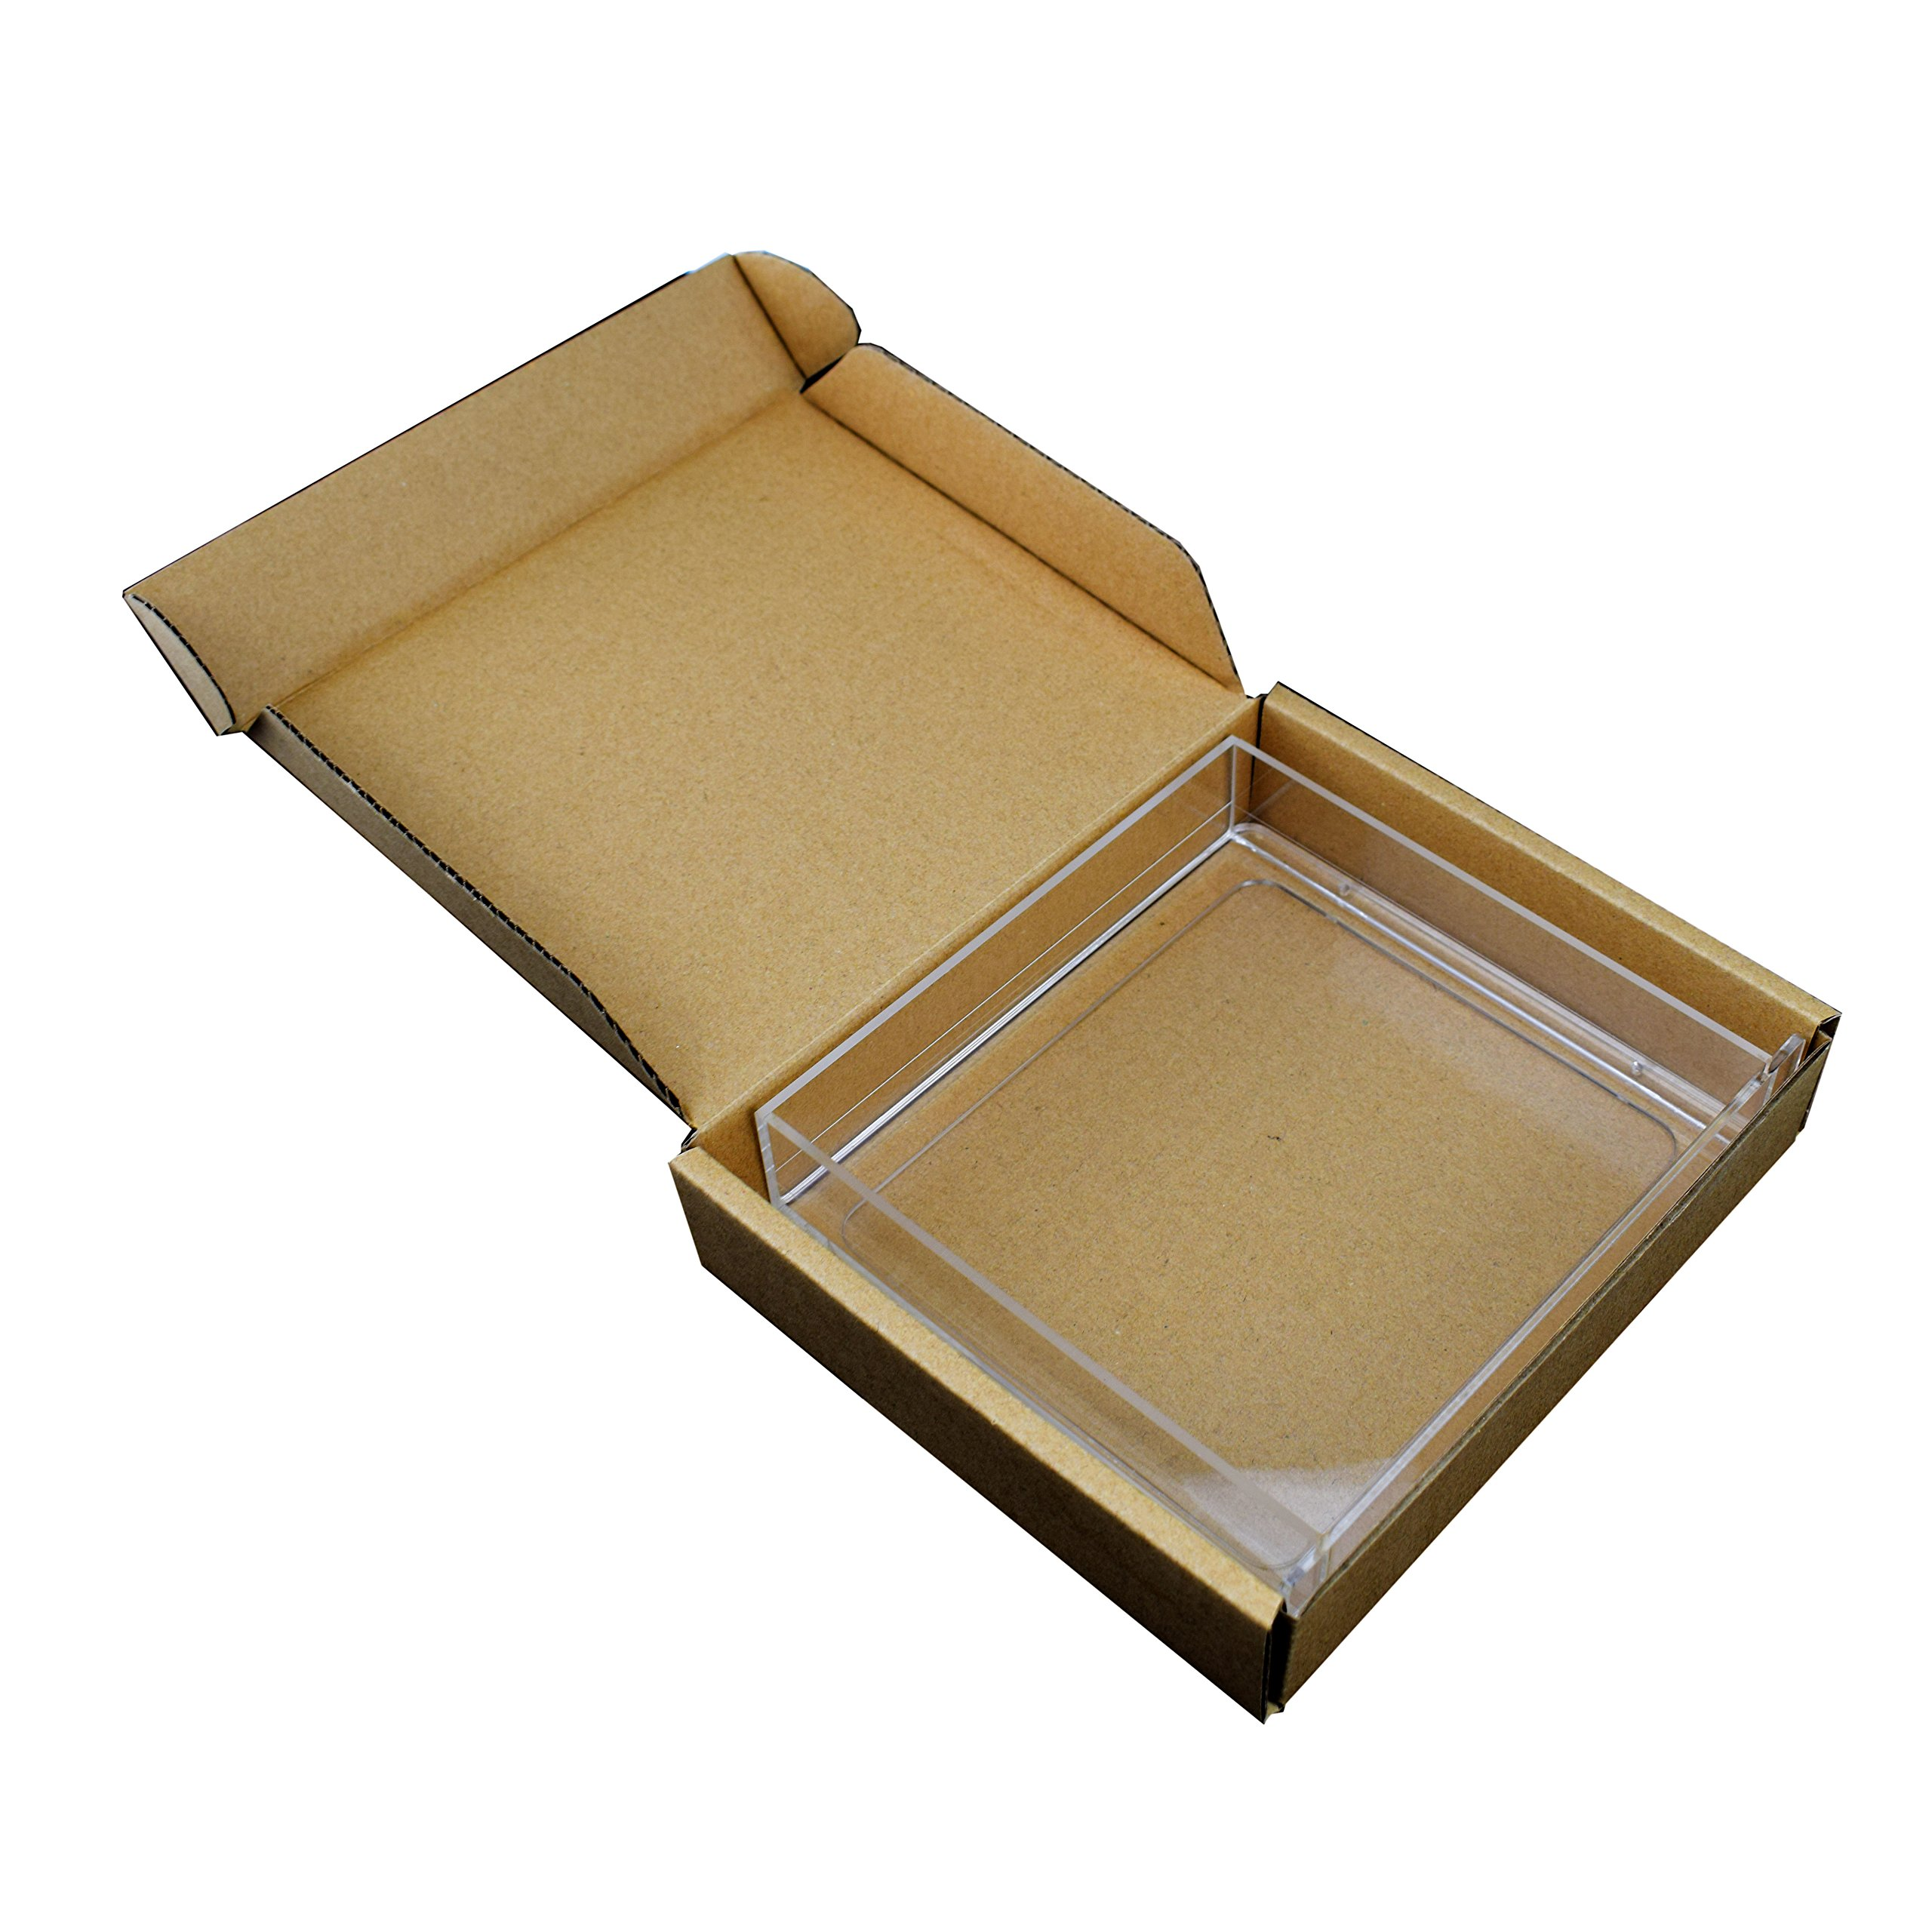 Resin Tank Resin Tray Resin vat for Form 1 form1+ SLA 3D Printer SLA DIY 3D Printer